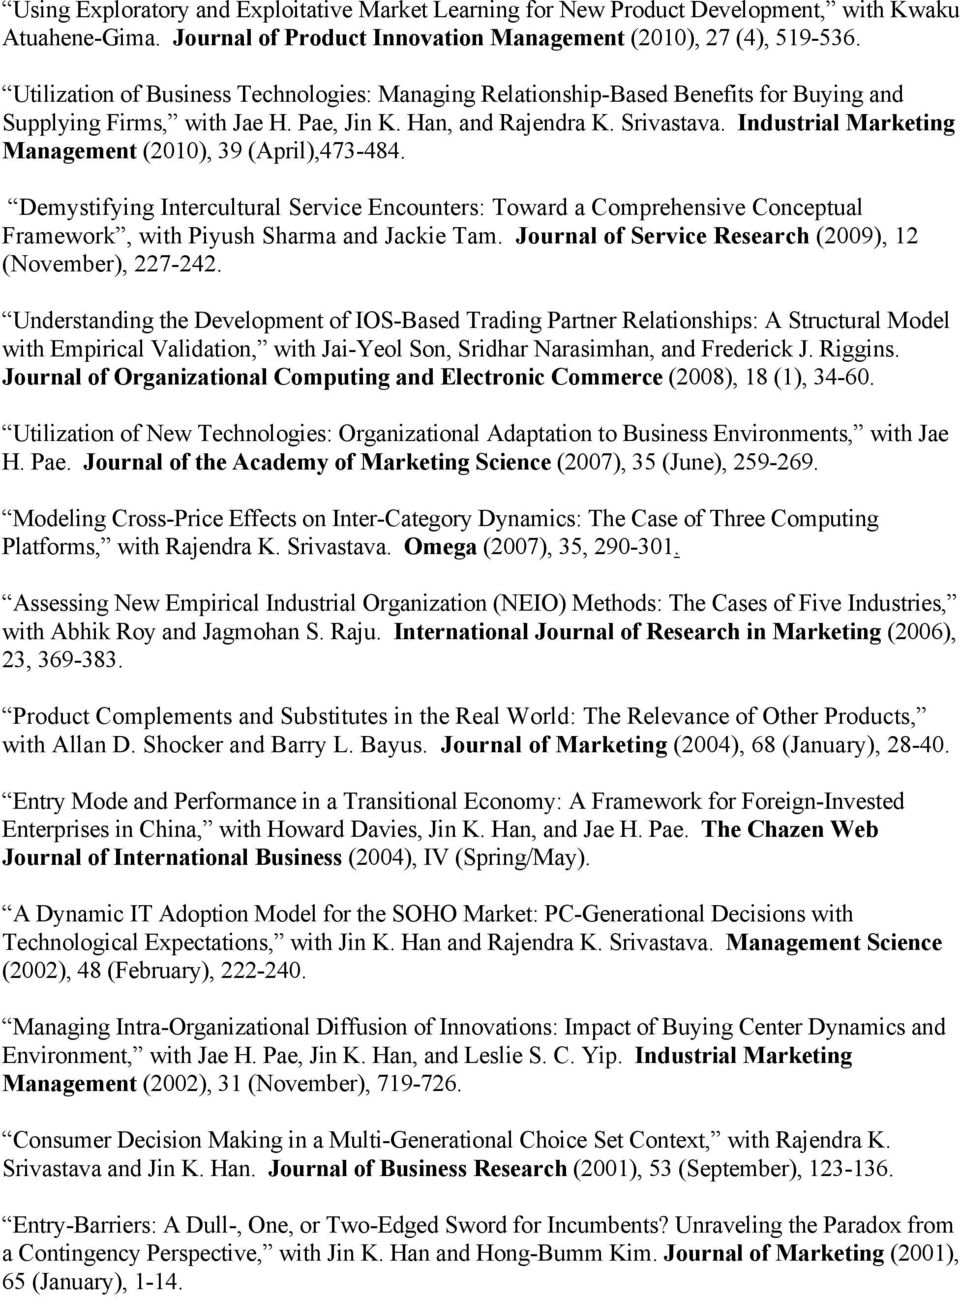 Industrial Marketing Management (2010), 39 (April),473-484. Demystifying Intercultural Service Encounters: Toward a Comprehensive Conceptual Framework, with Piyush Sharma and Jackie Tam.